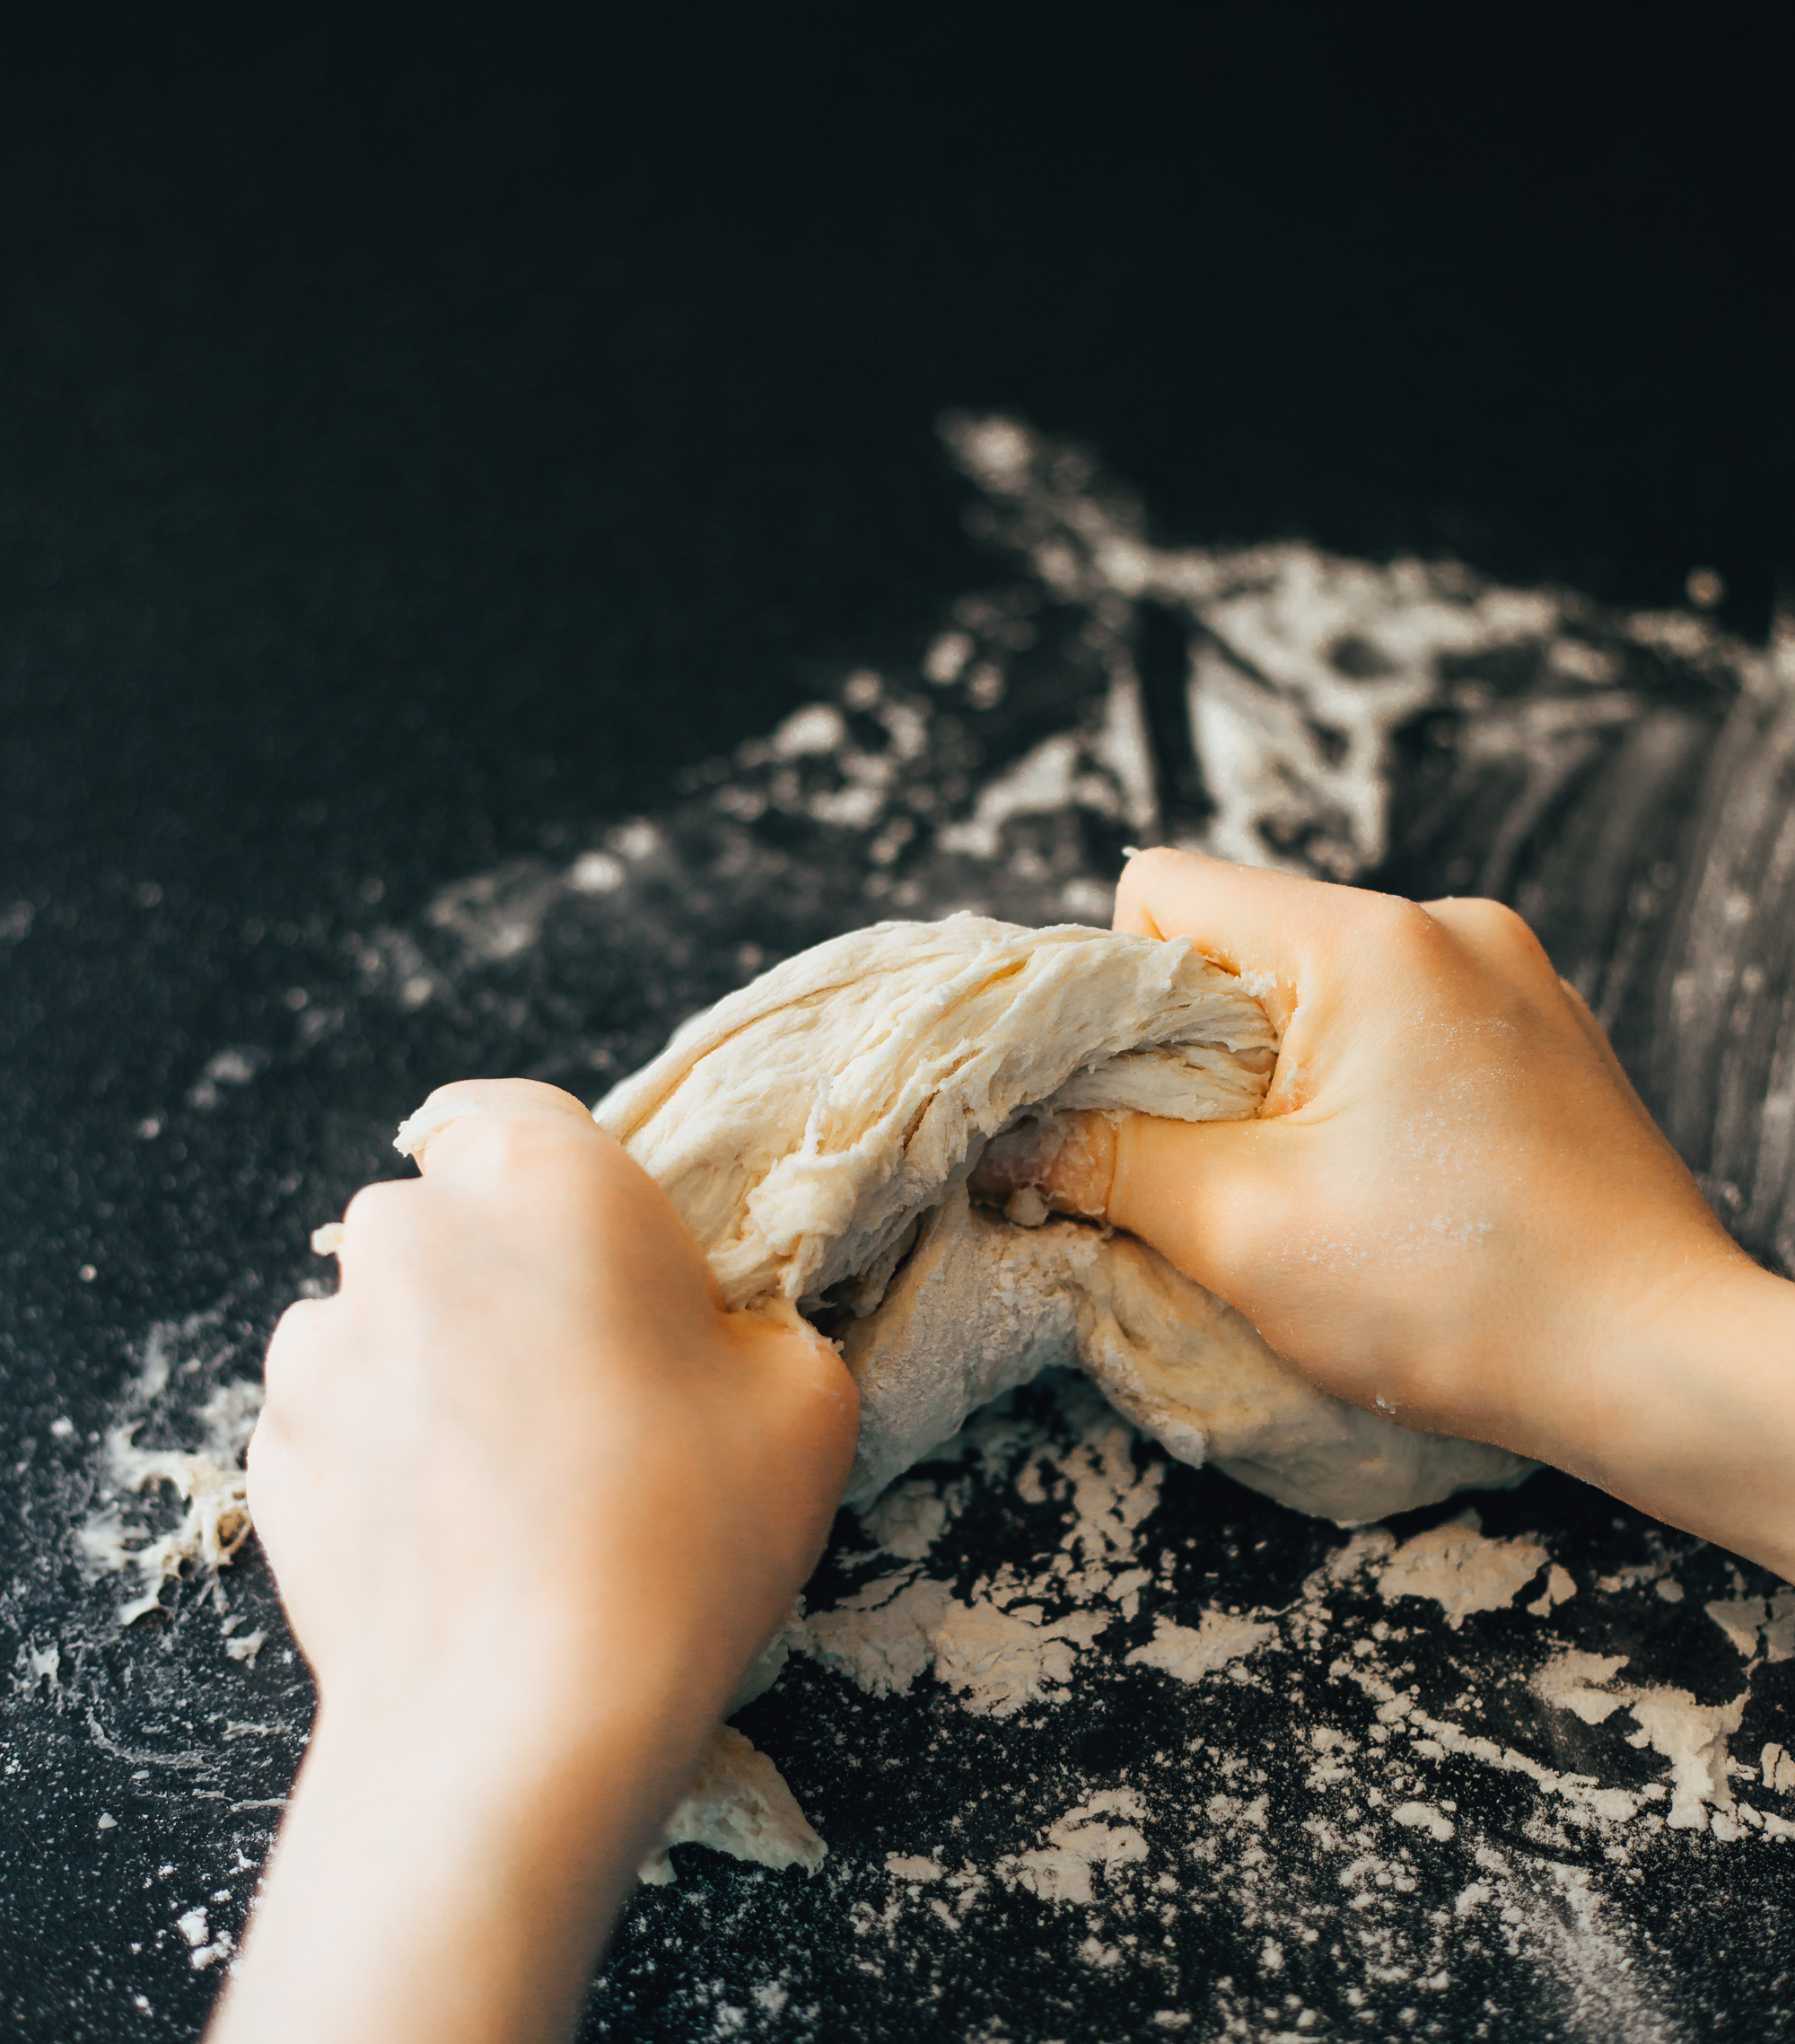 Pizza dough being kneaded by a child's hands